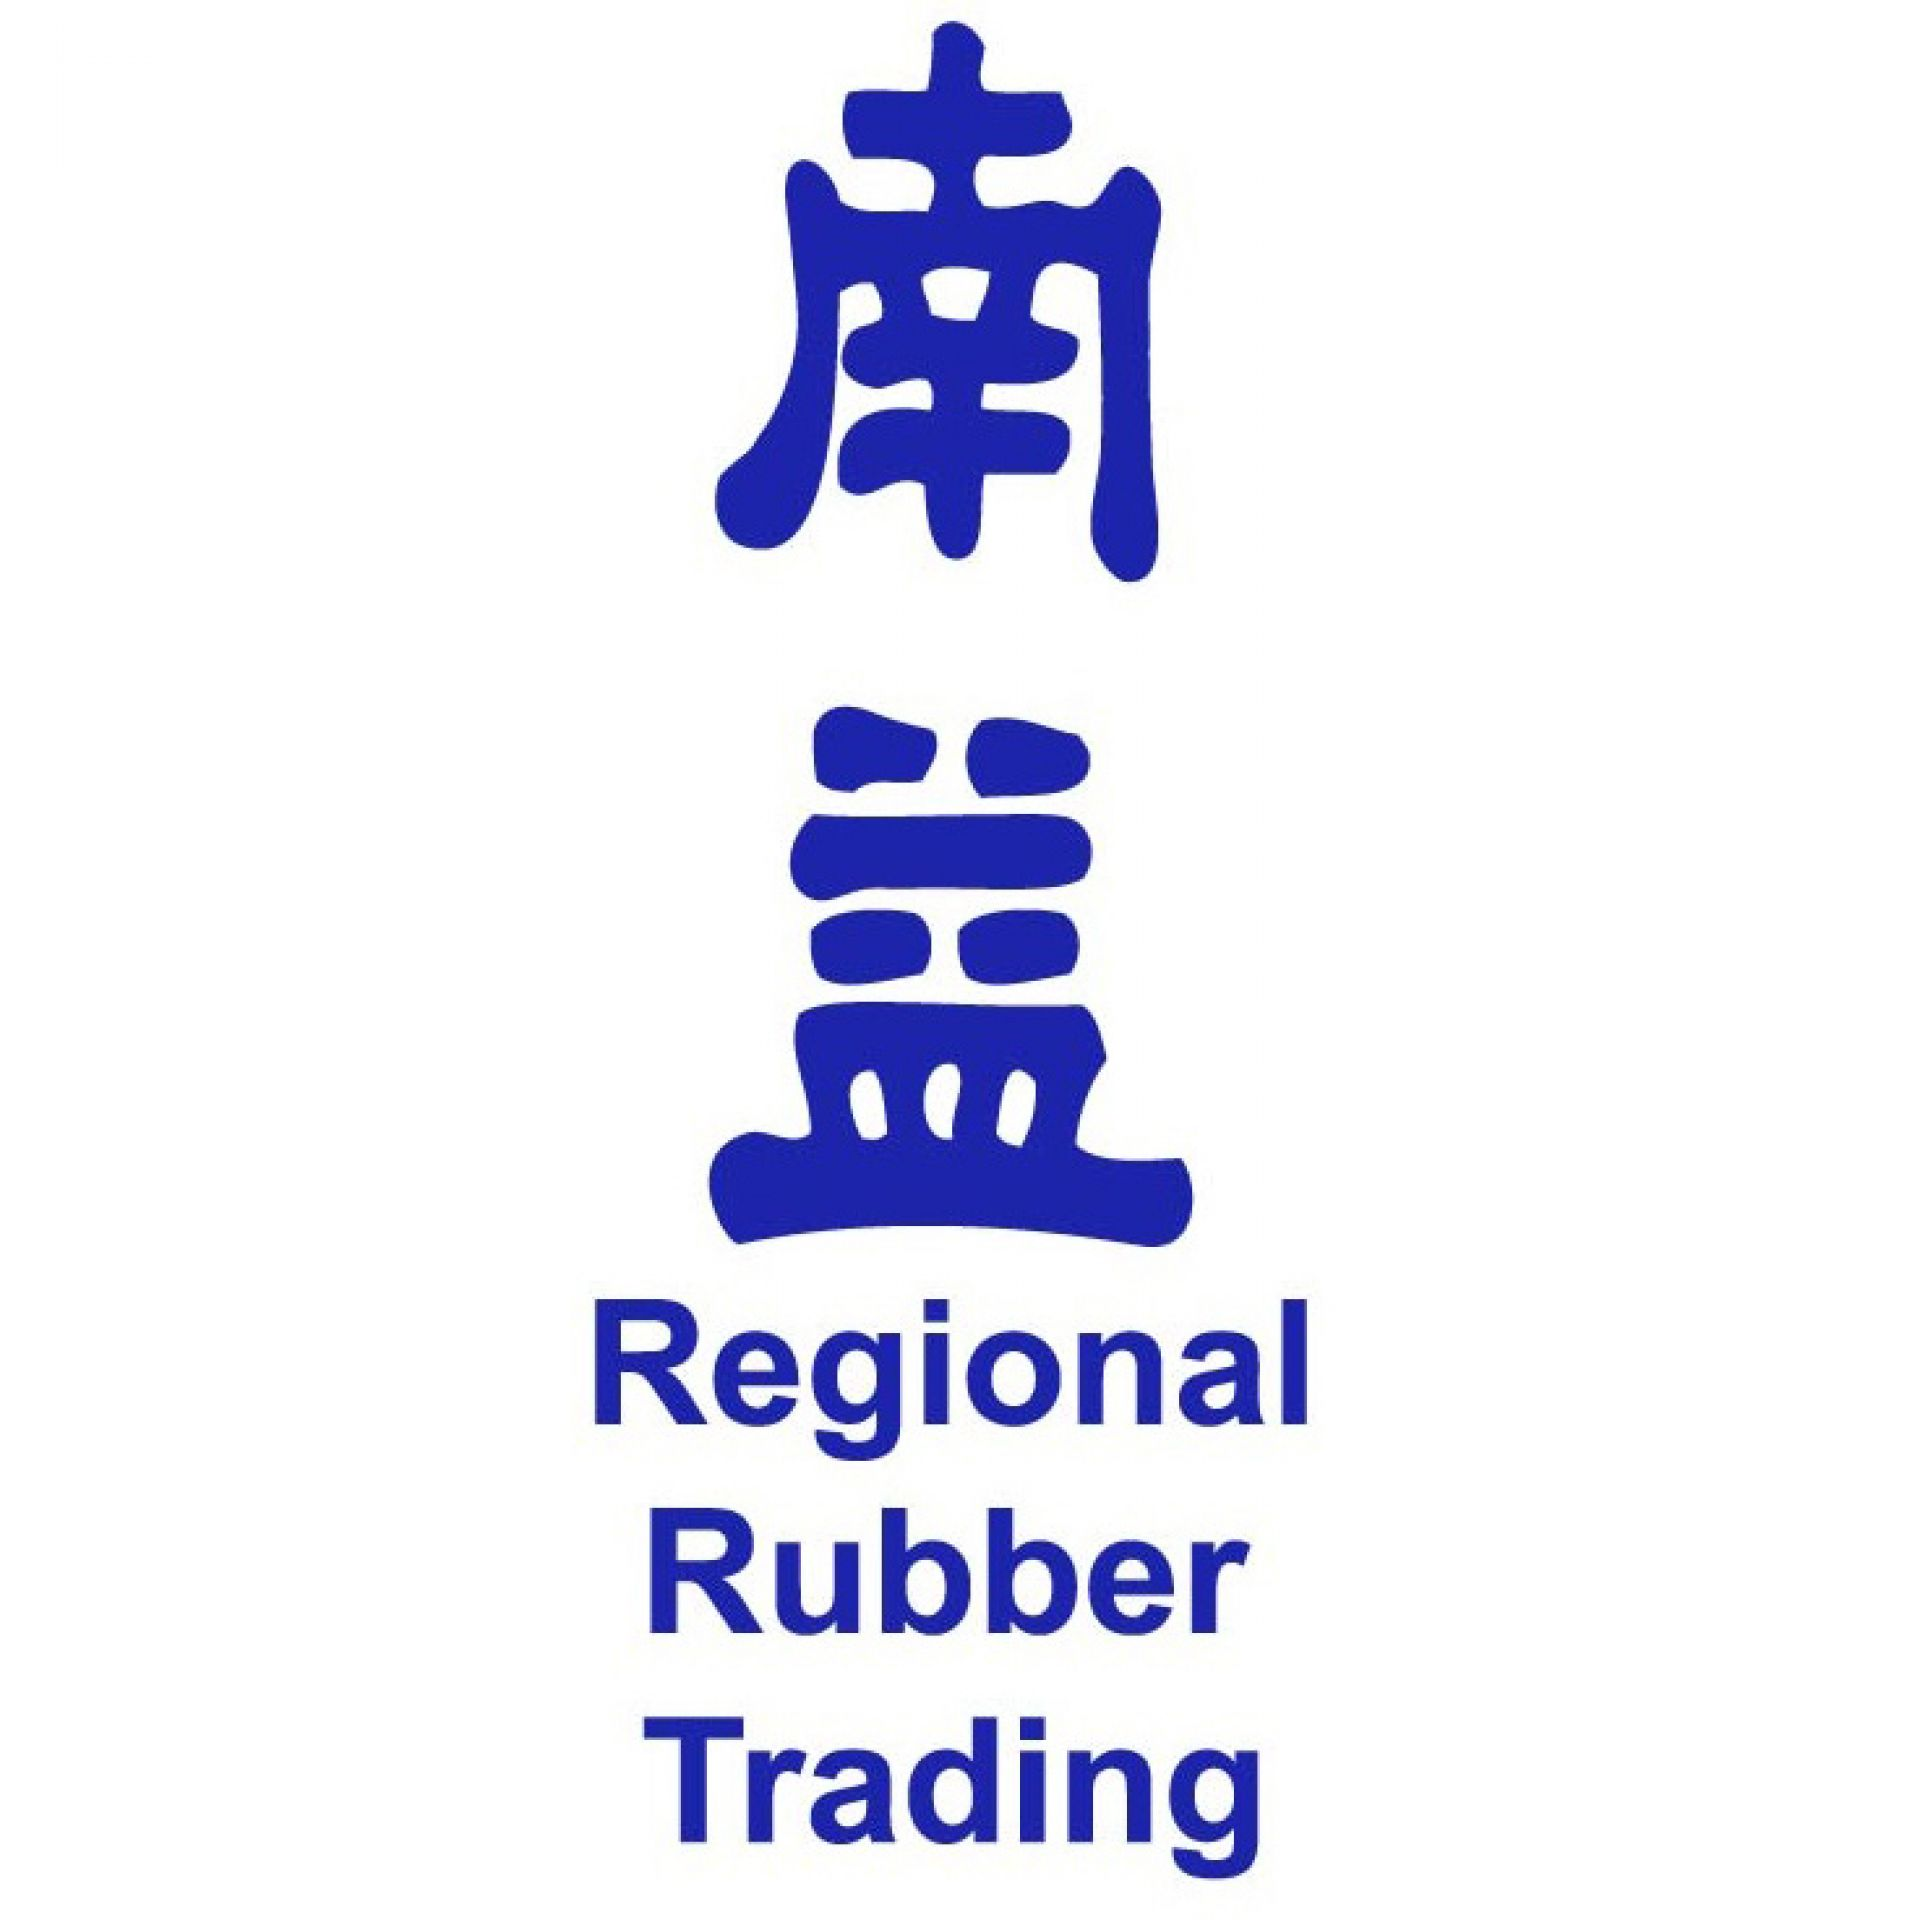 Regional Rubber Trading Co.